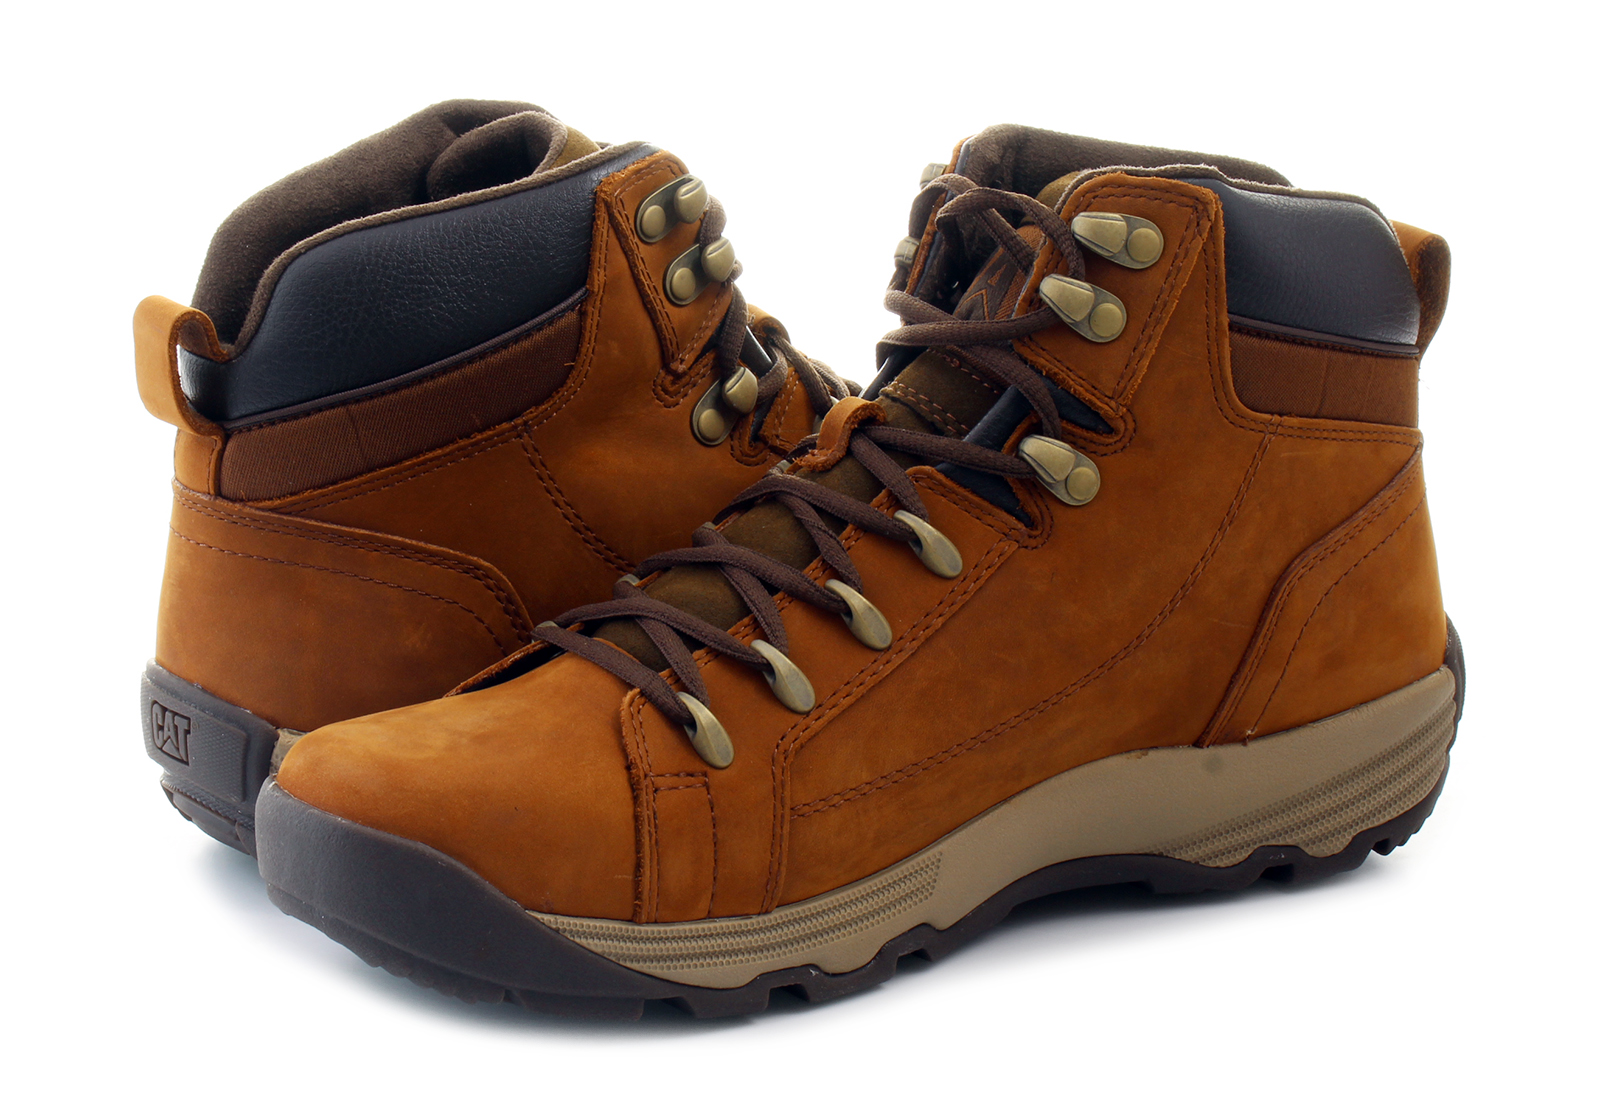 c4bcc4e005 Cat Boots - Supersede - 720290-brn - Online shop for sneakers, shoes ...